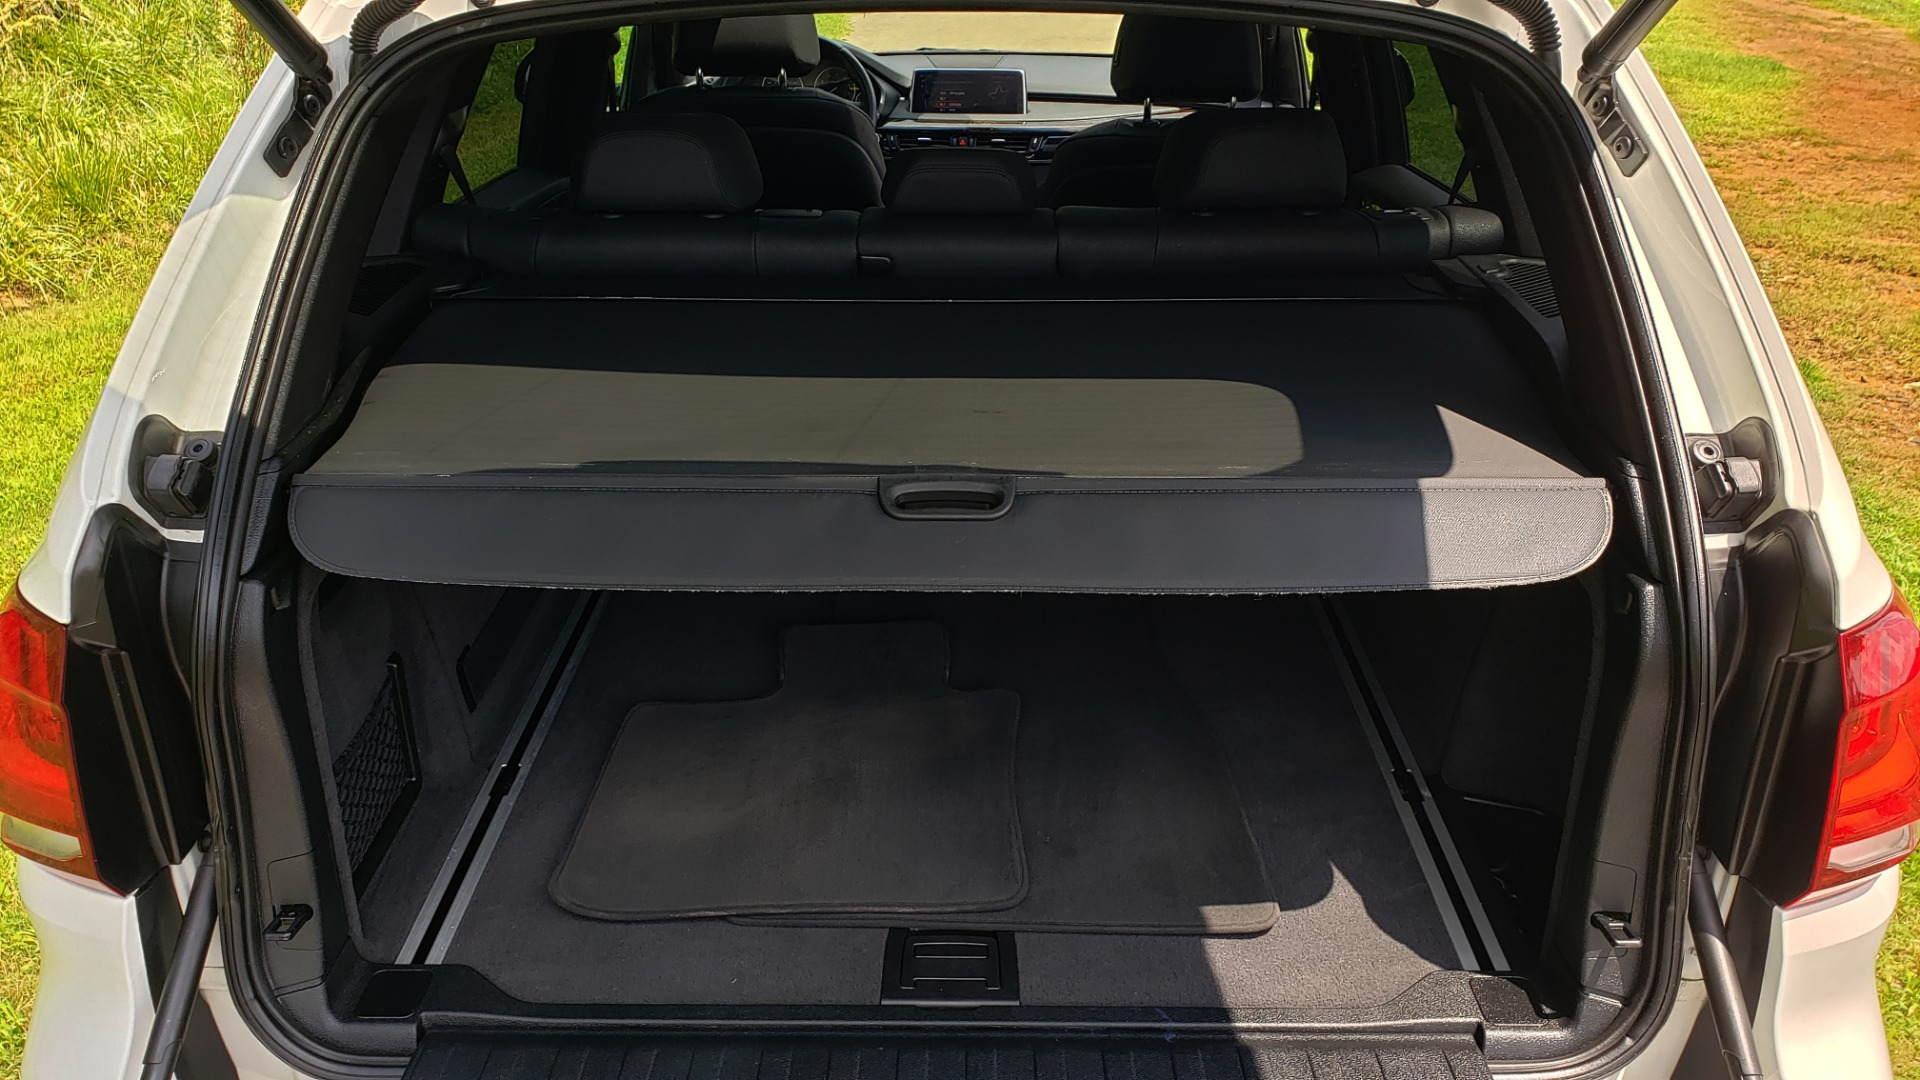 Used 2017 BMW X5 XDRIVE35I / NAV / SUNROOF / RUNNING BOARDS / REARVIEW for sale $33,995 at Formula Imports in Charlotte NC 28227 26